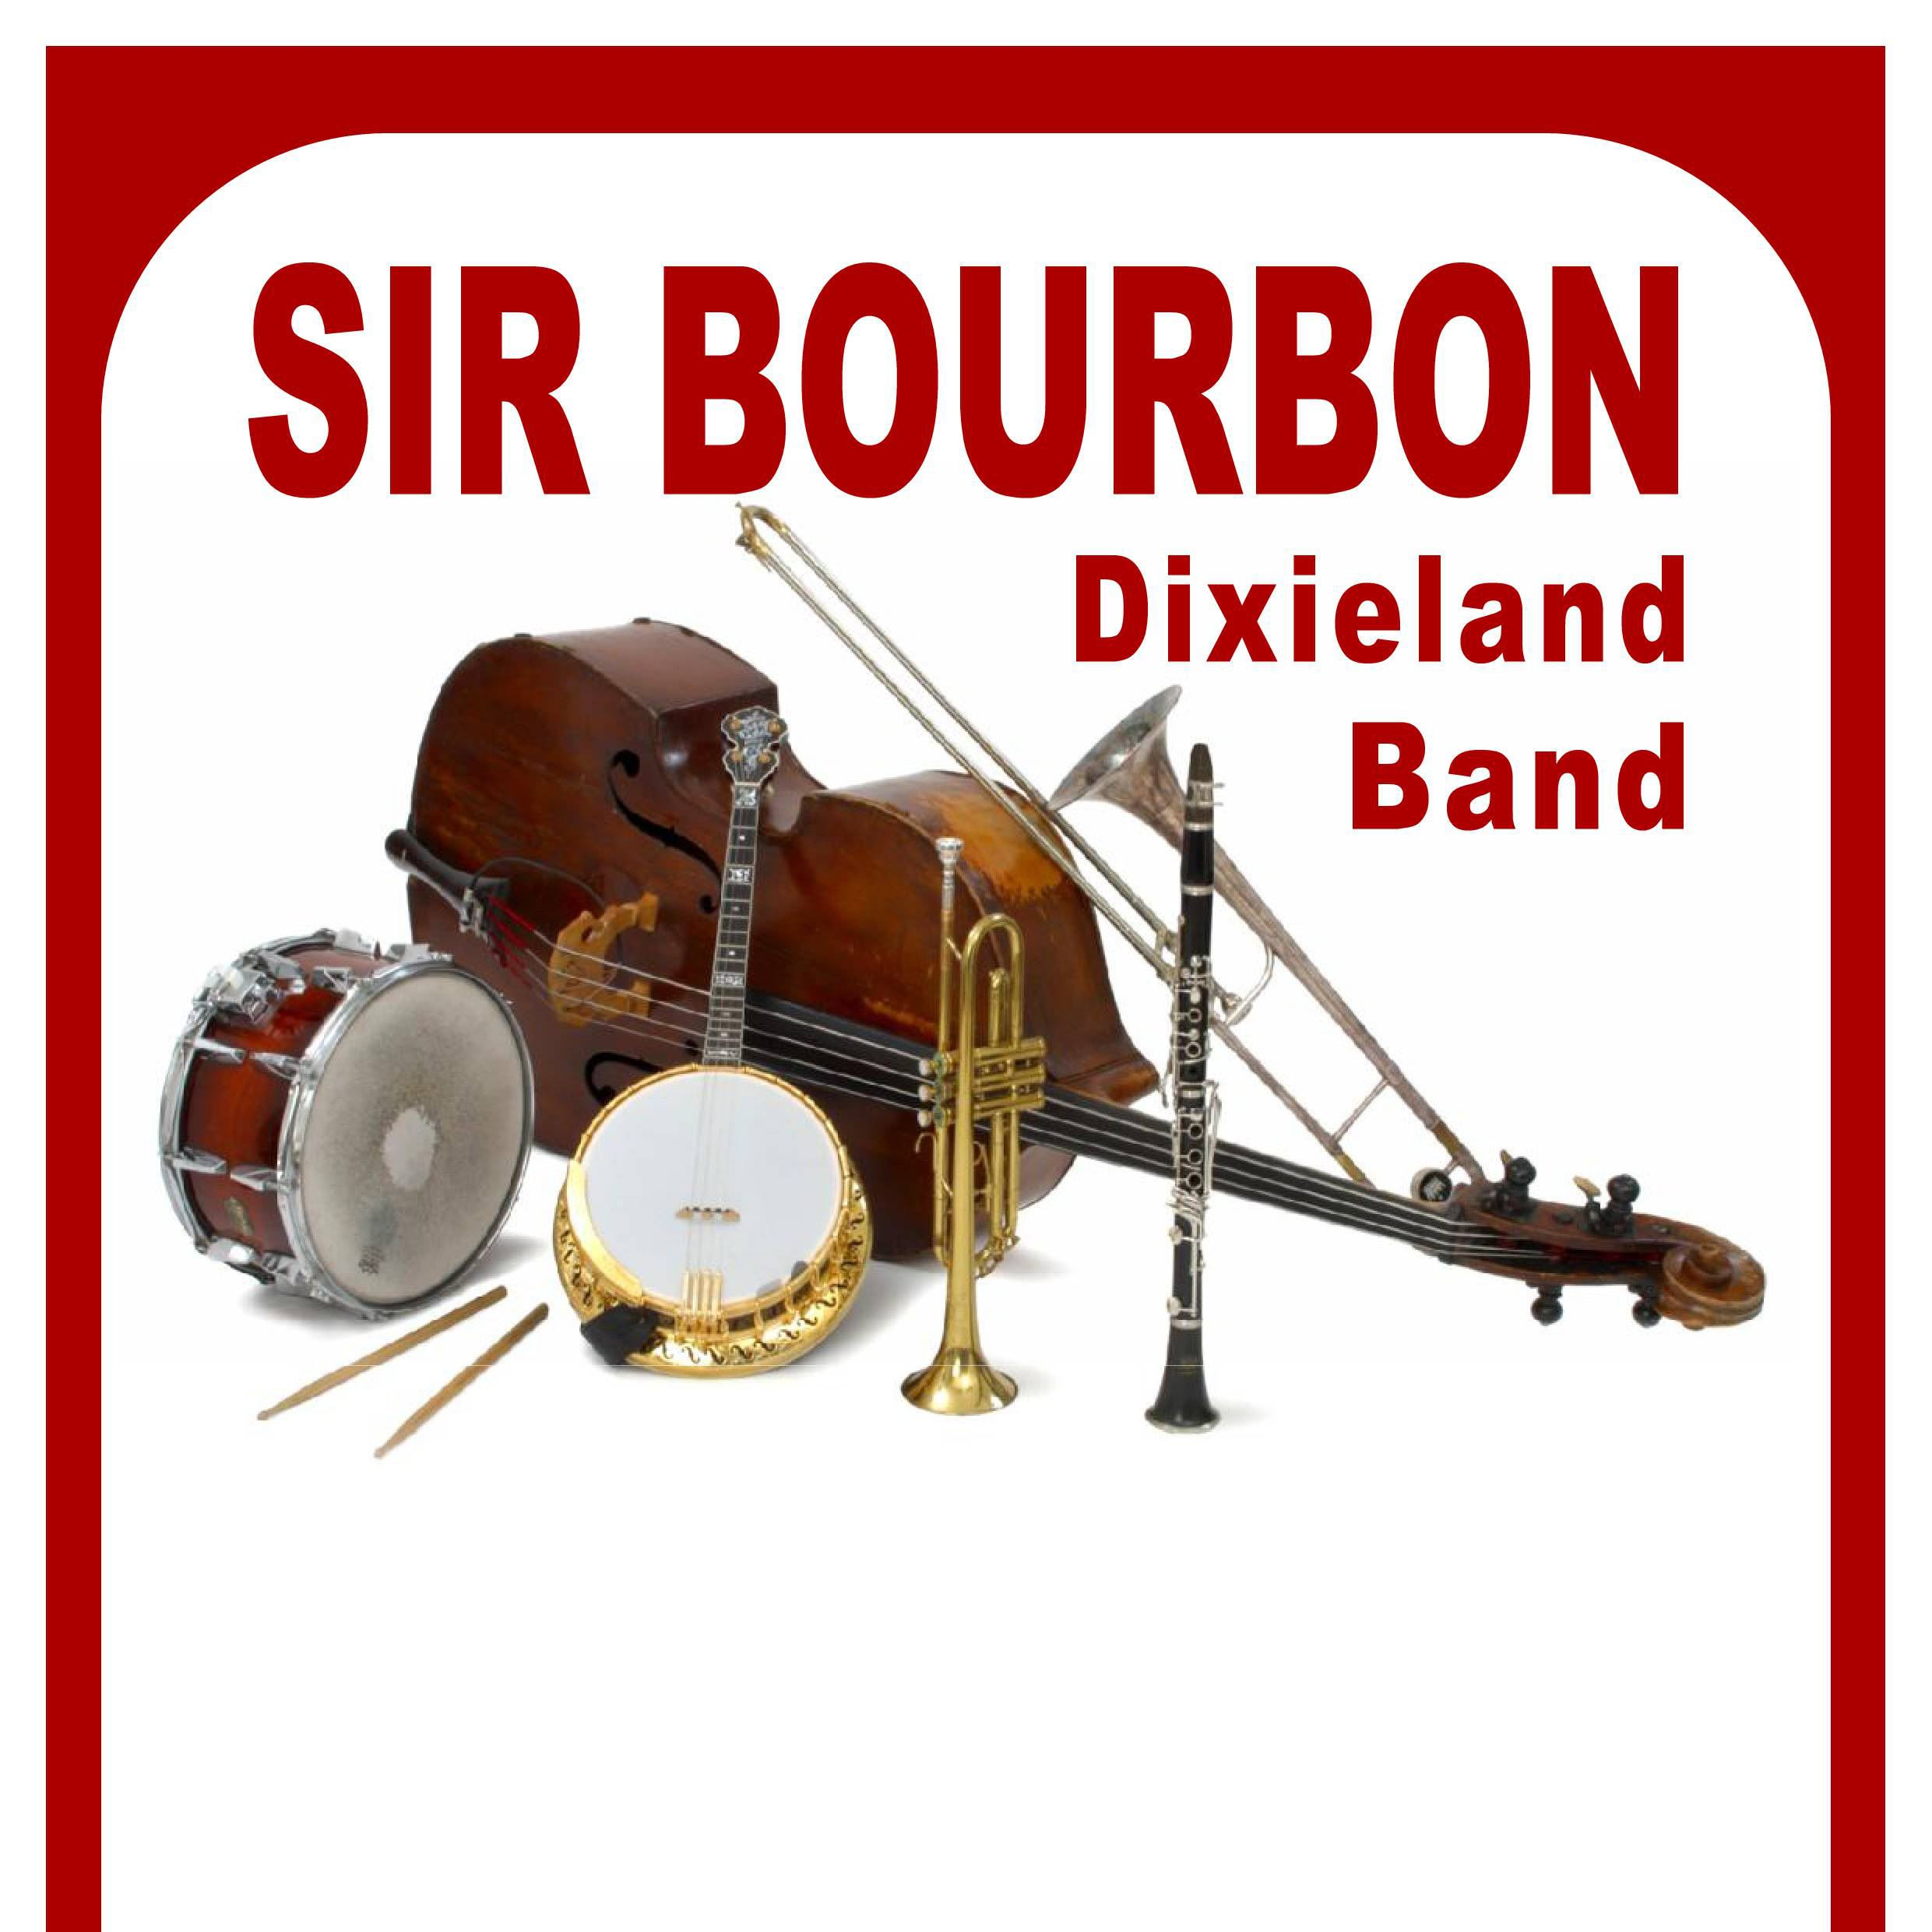 Sirbourbon Dixieland Band